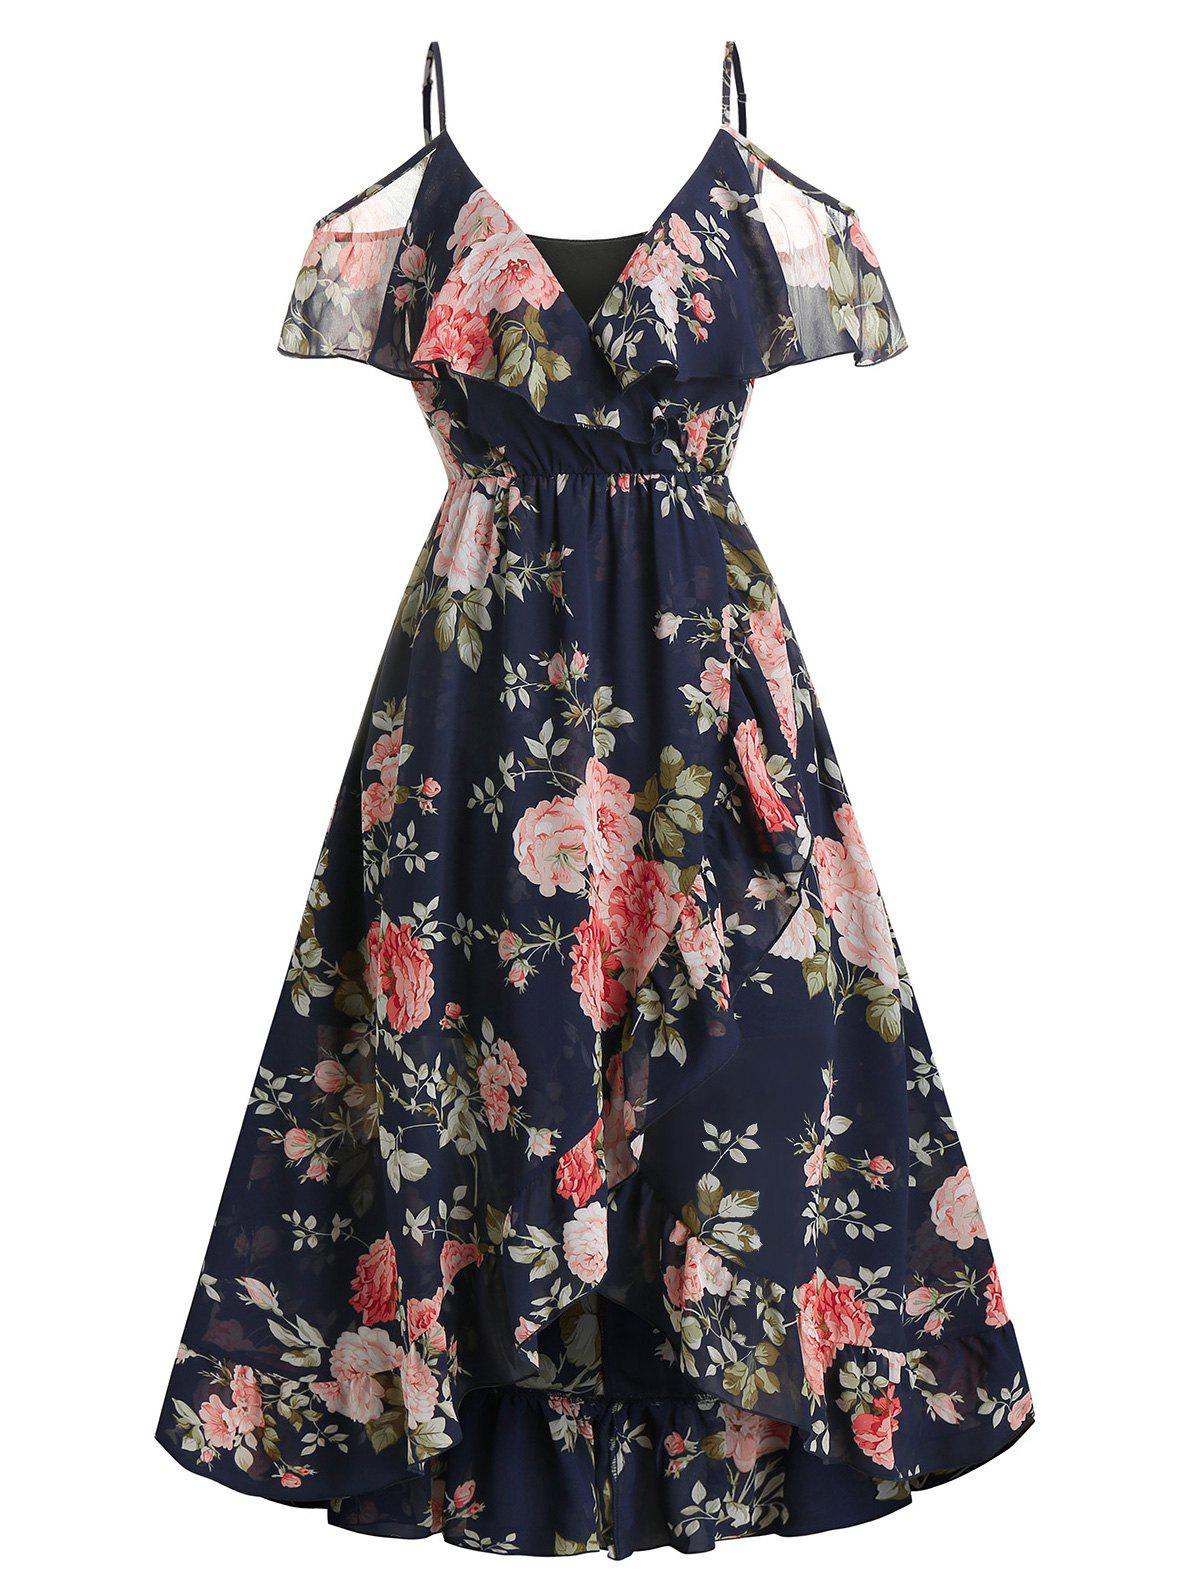 Floral Print Cold Shoulder Surplice Dress - CADETBLUE L